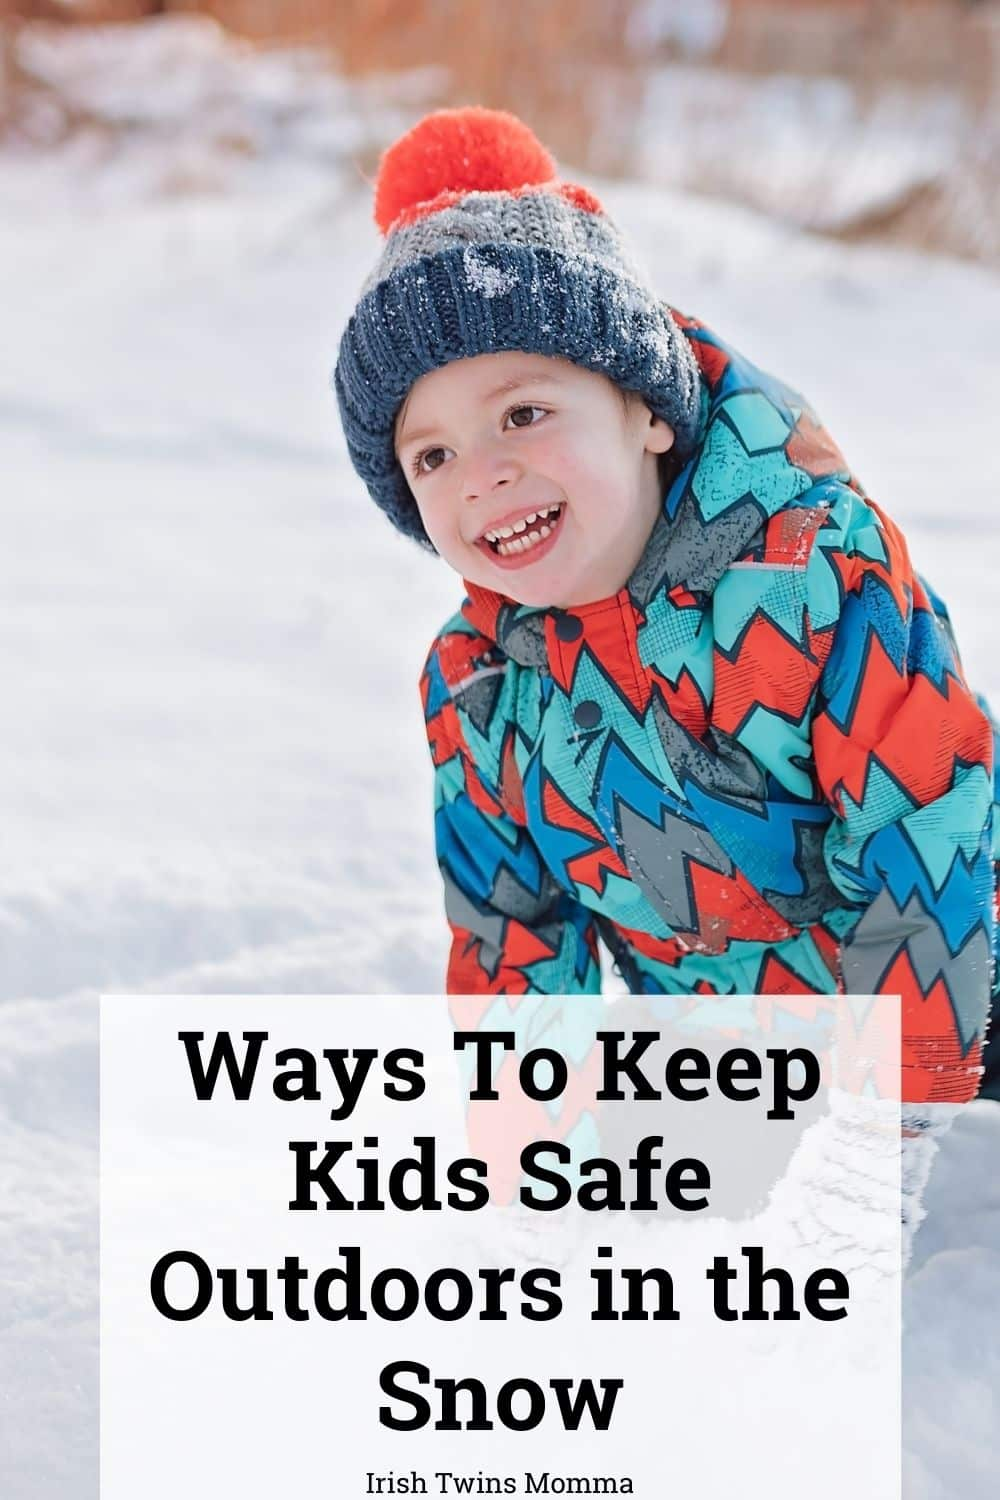 Ways To Keep Kids Safe Outdoors in the Snow